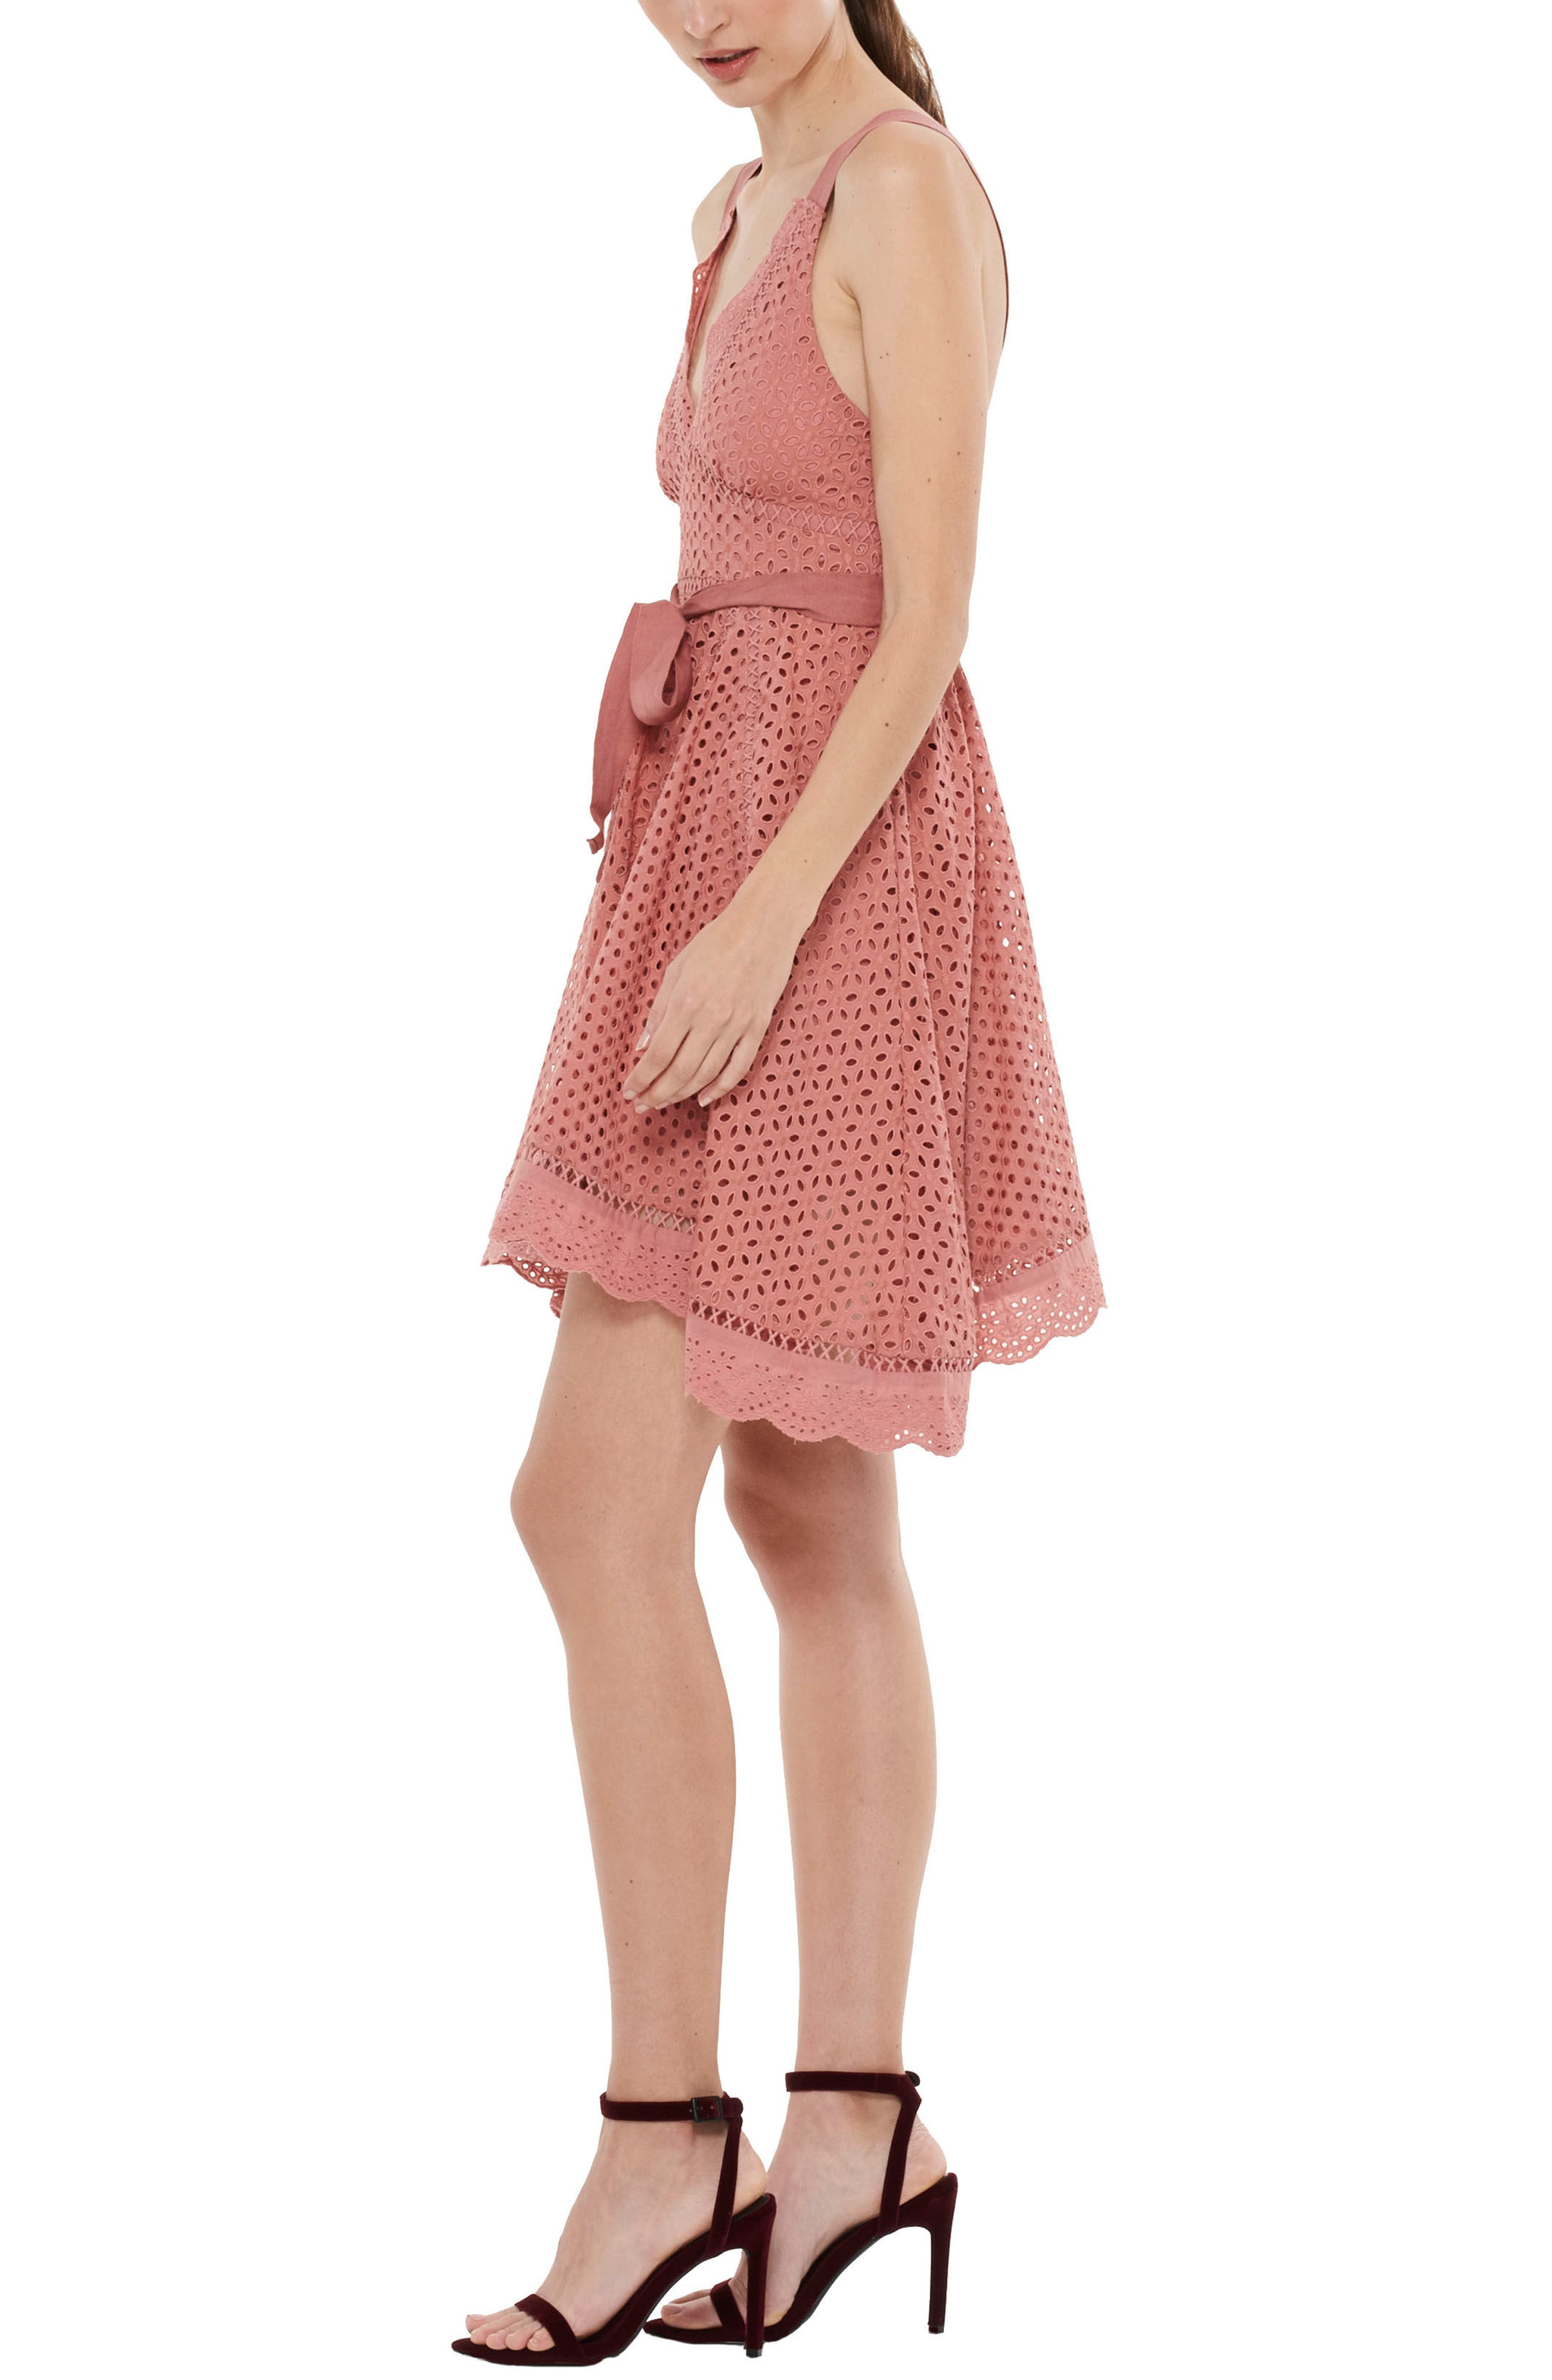 Rapture Eyelet Dress,                             Alternate thumbnail 3, color,                             Rust